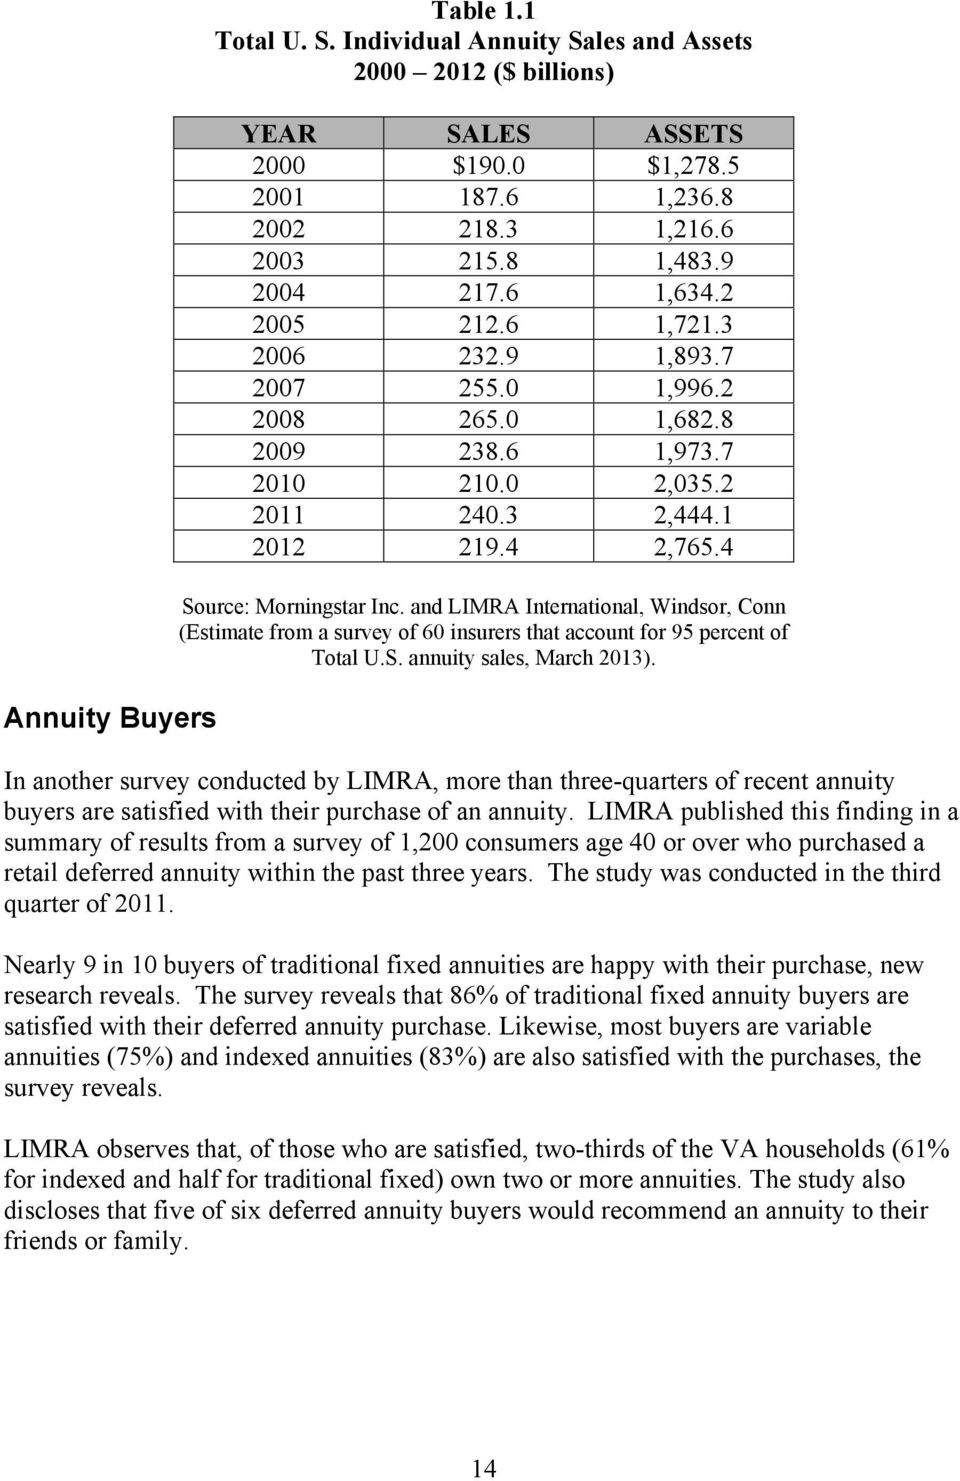 and LIMRA International, Windsor, Conn (Estimate from a survey of 60 insurers that account for 95 percent of Total U.S. annuity sales, March 2013).